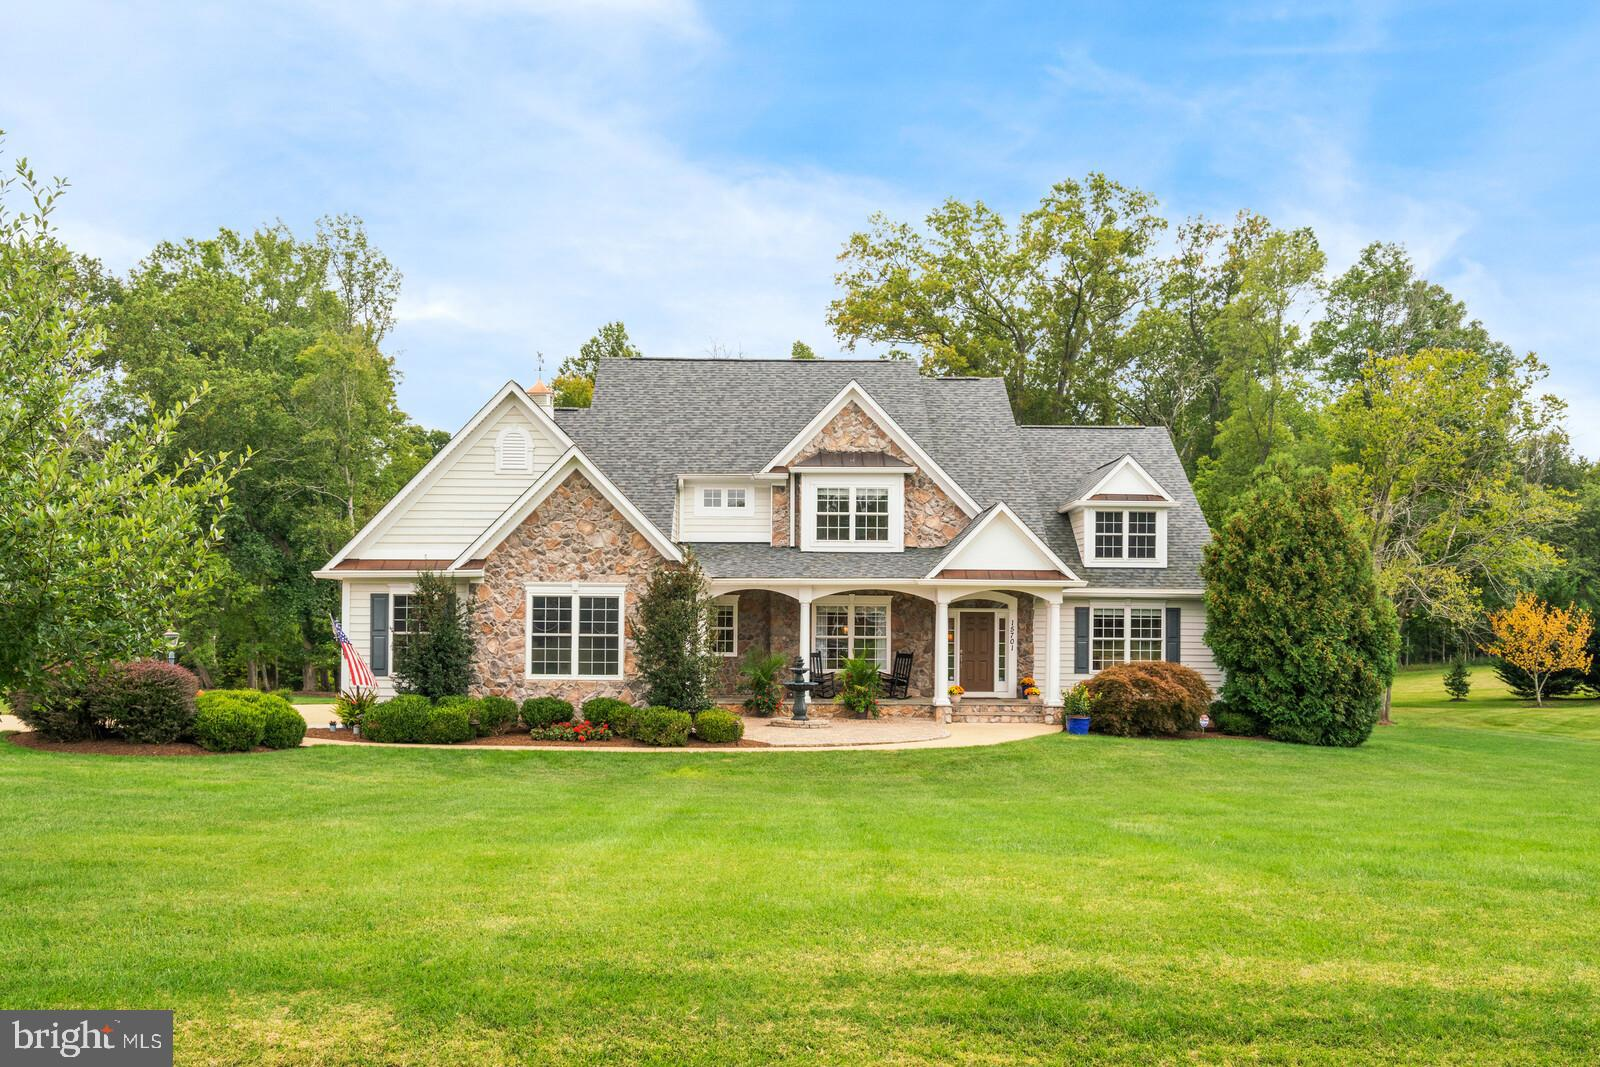 Gorgeous custom home on 2 acres in Evergreen Farm with Stone and vinyl siding exterior. Enter this h